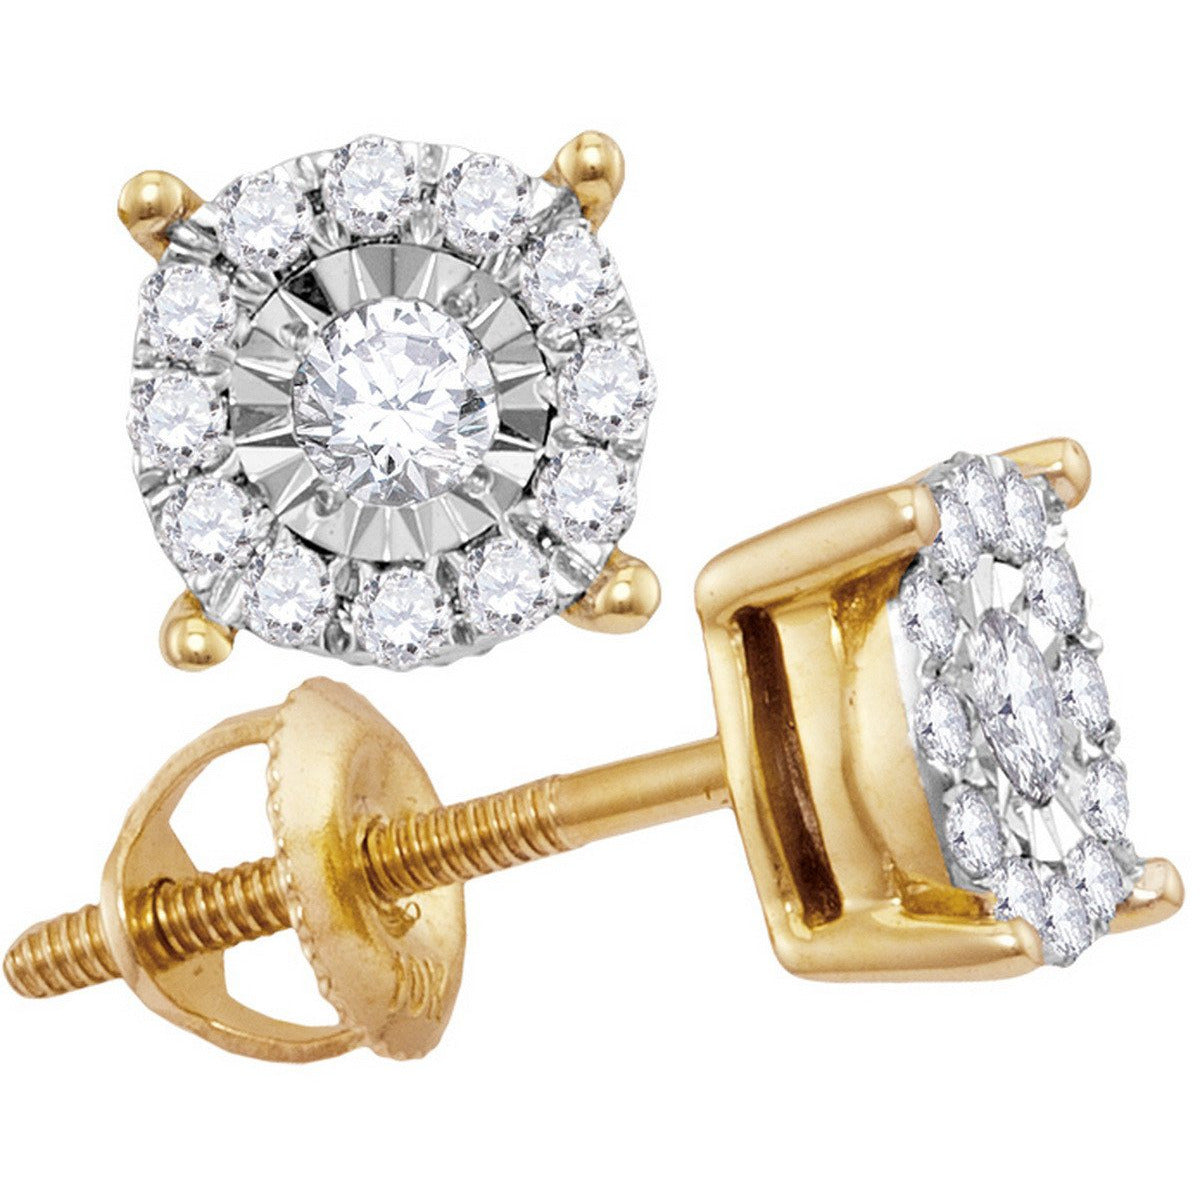 10kt Yellow Gold Womens Round Diamond Solitaire Cluster Stud Earrings 1/4 Cttw 114199 - shirin-diamonds